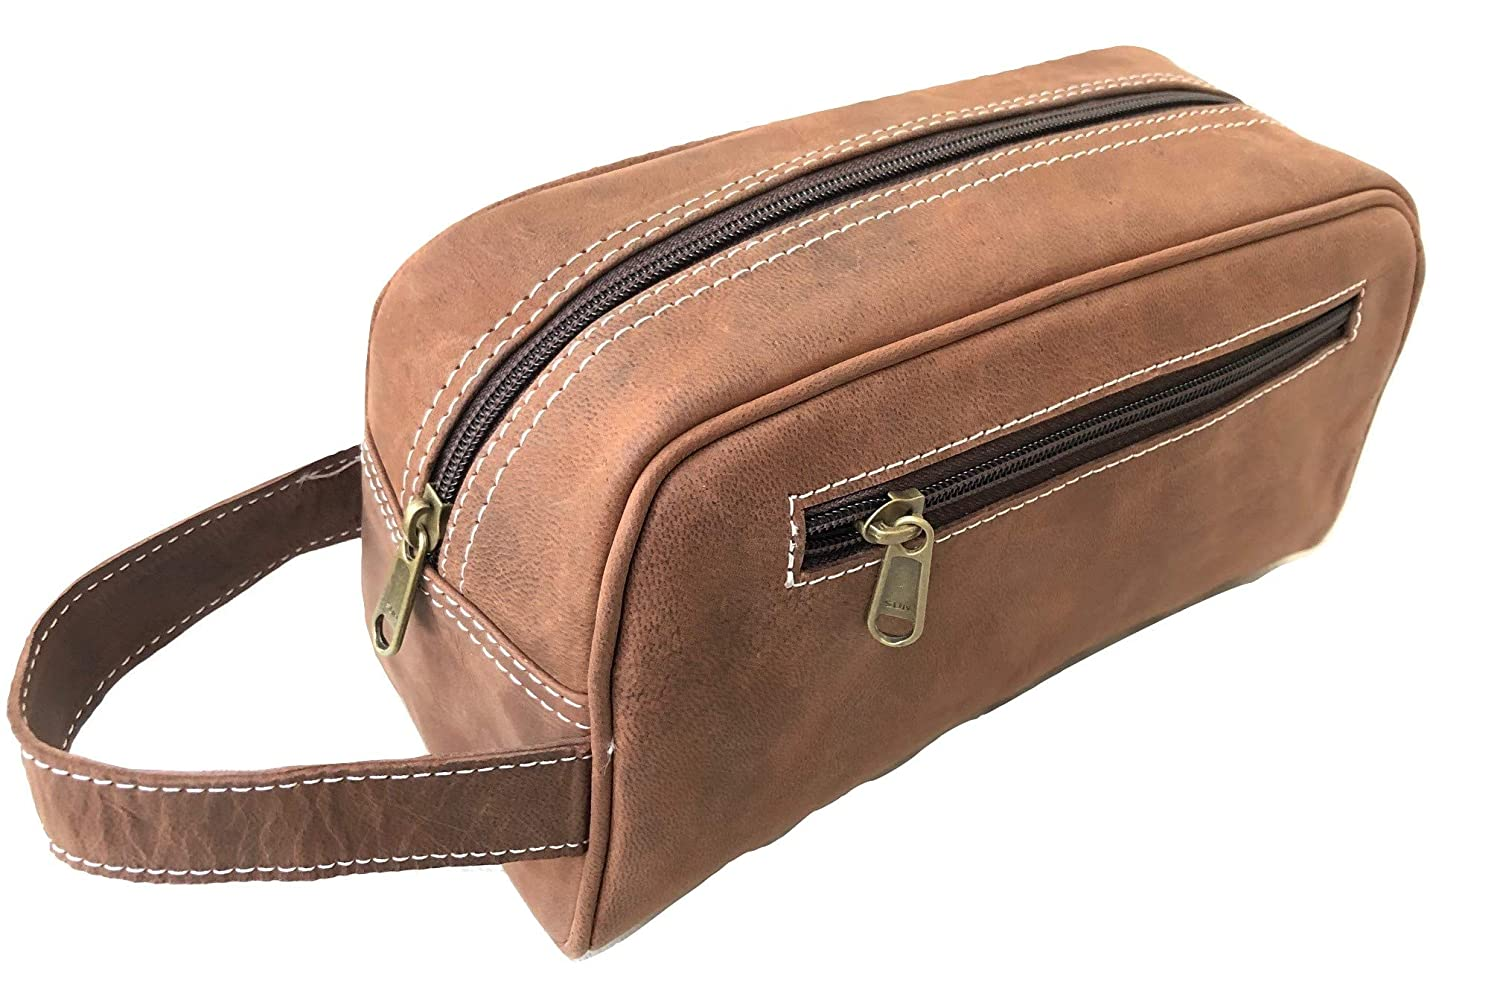 Toiletry Travel Bag for Men Large Leather Dopp Kit Mens Toiletries Bathroom Organizer